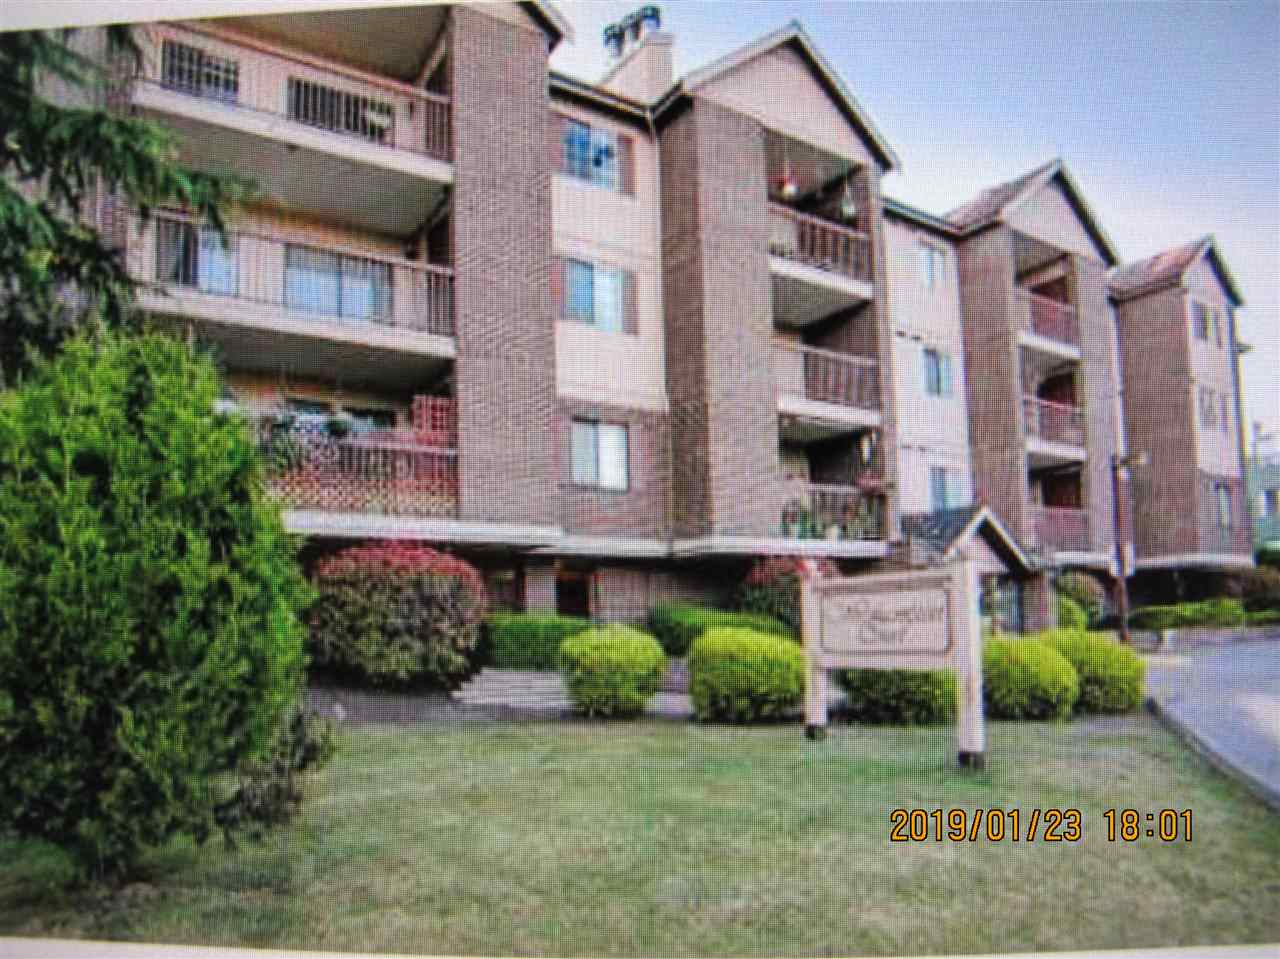 Buliding: 8511 Westminster Highway, Richmond, BC